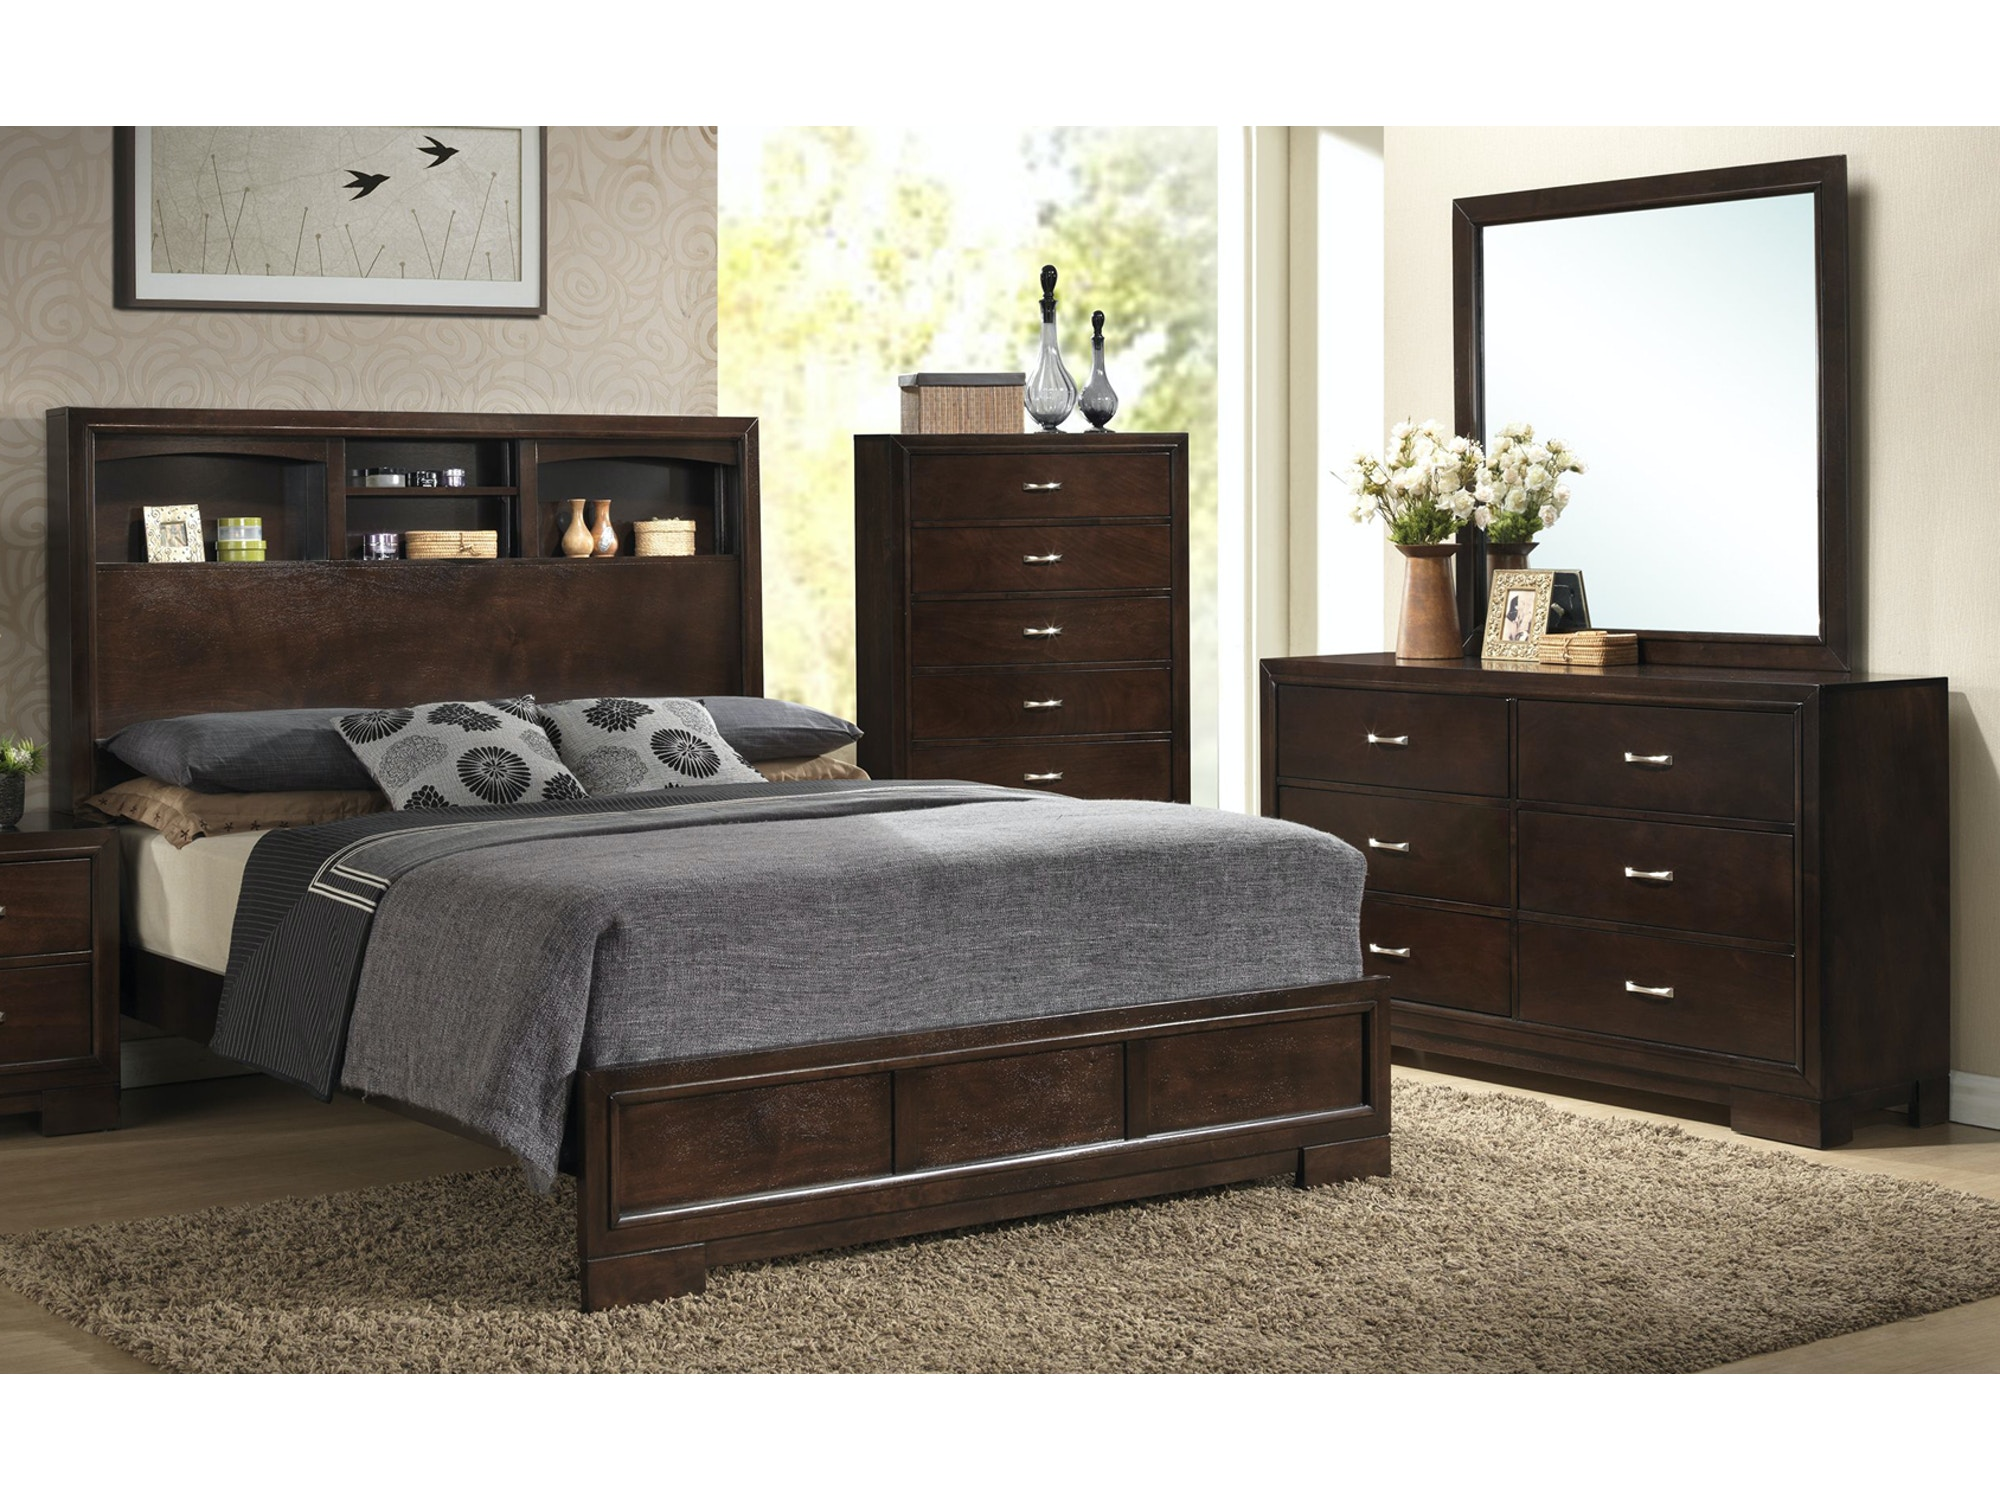 Alameda Bookcase Bedroom Group - Queen 359402